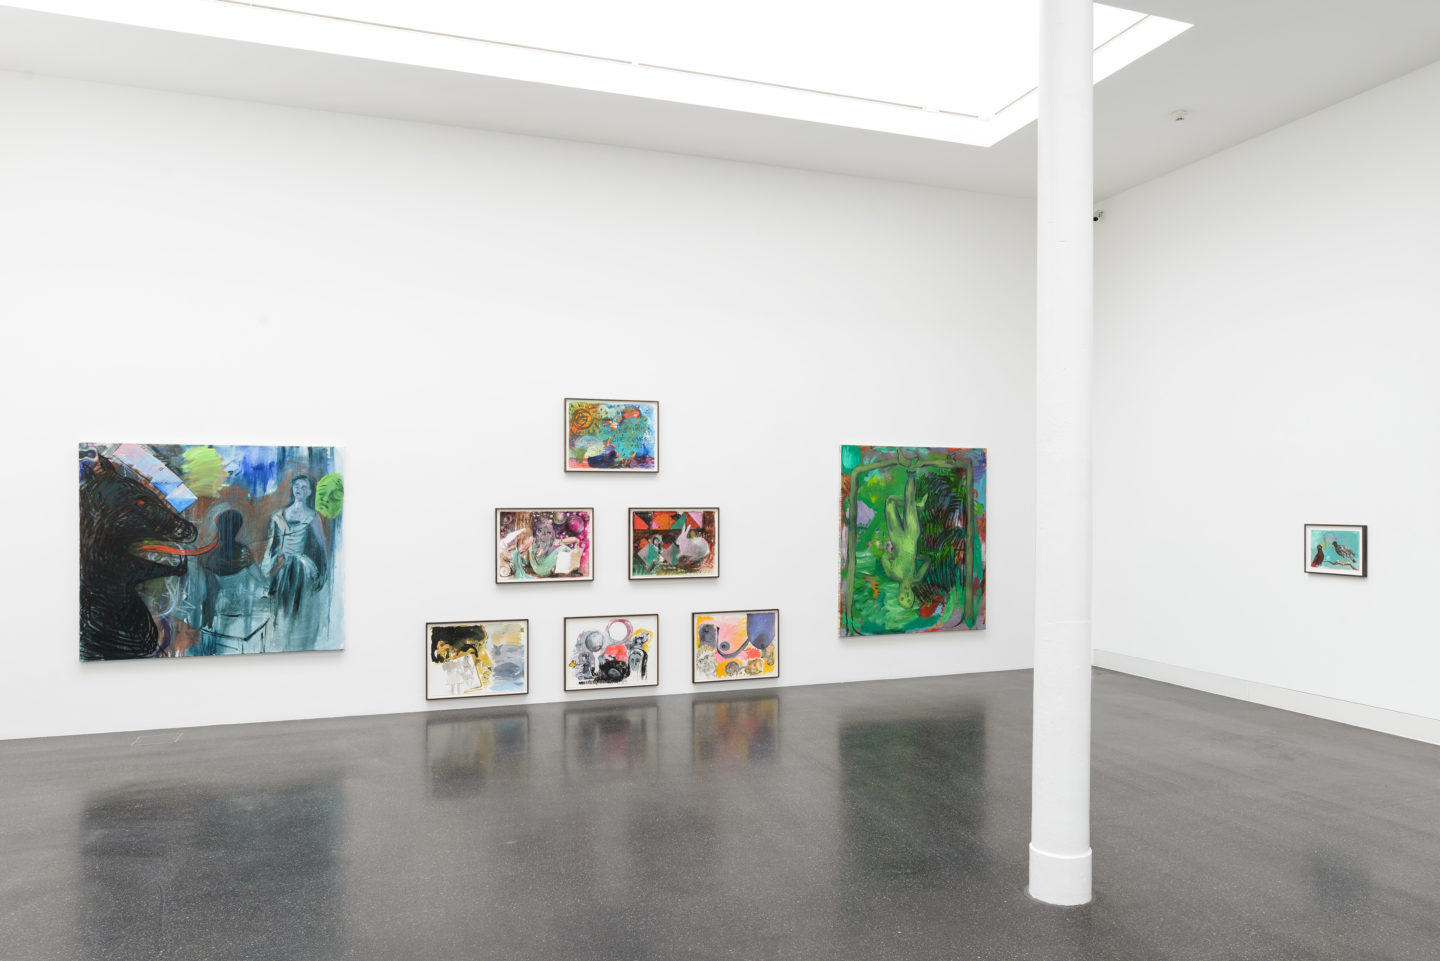 "Installation View Lucy Stein ""Knockers"" at Galerie Gregor Staiger, Zurich / Courtesy: the artist and Galerie Gregor Staiger, Zurich"